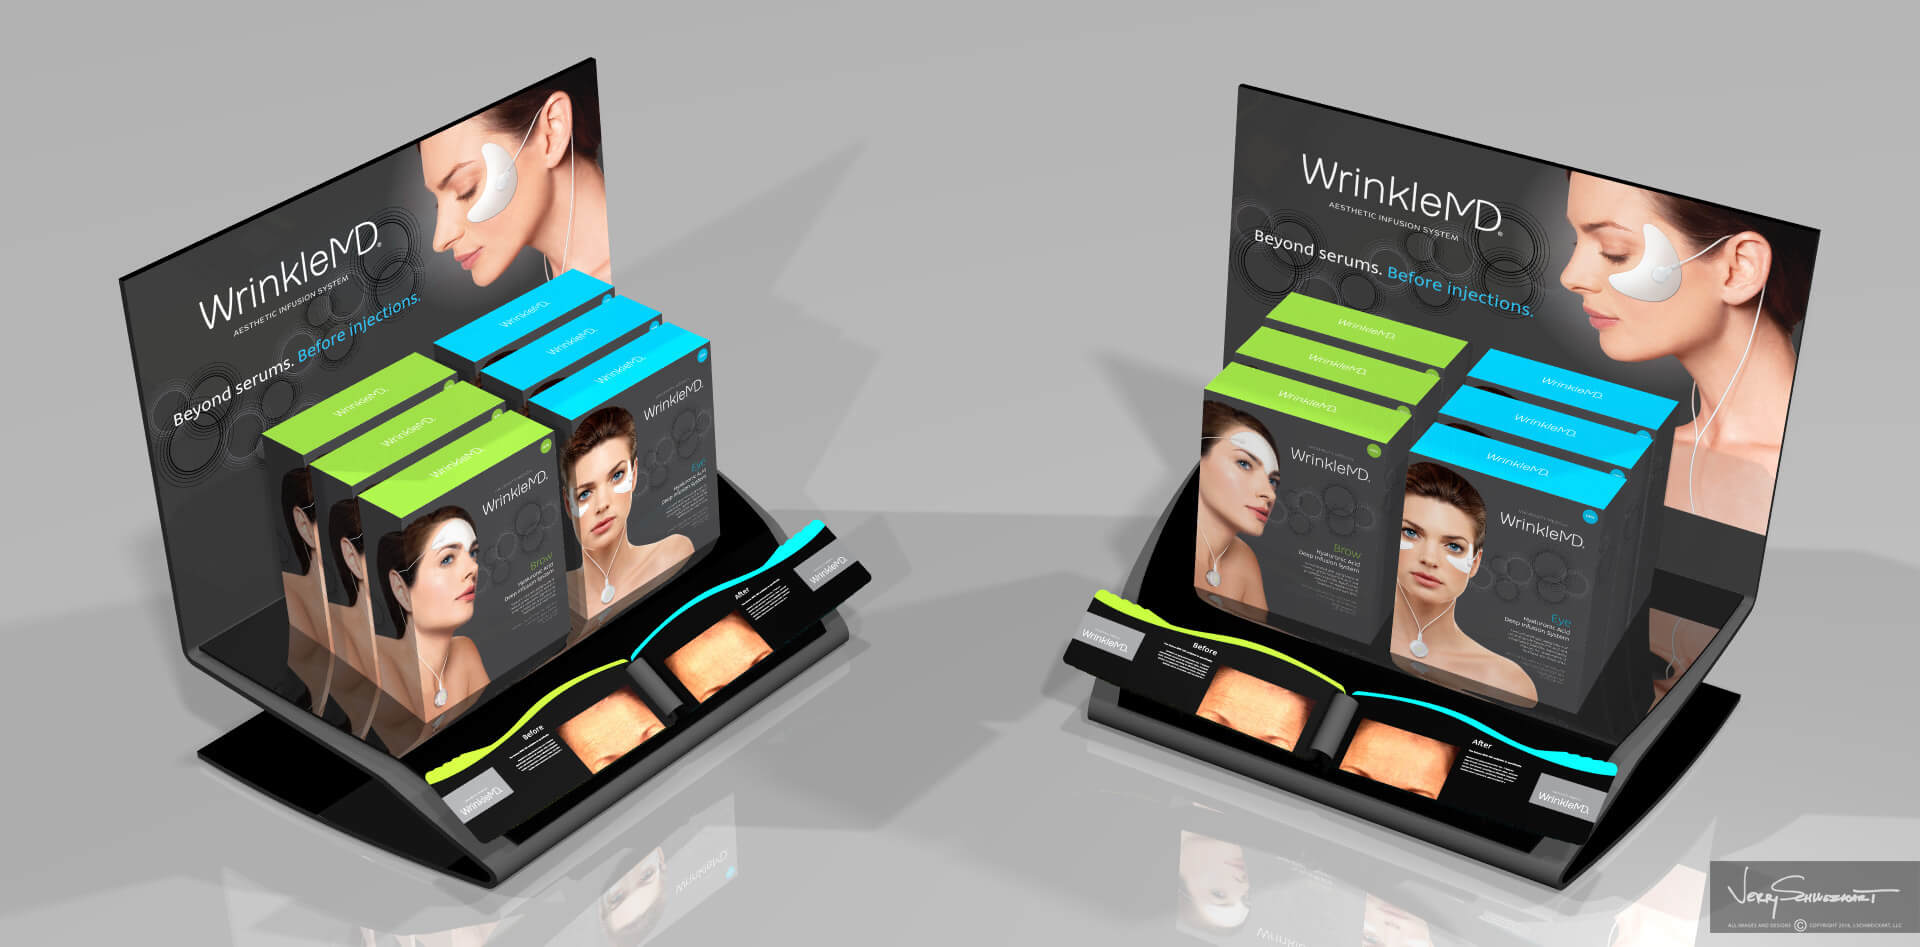 Wrinkle MD Countertop Point of Purchase Display Designed by Industrial Designer Jer Schweickart